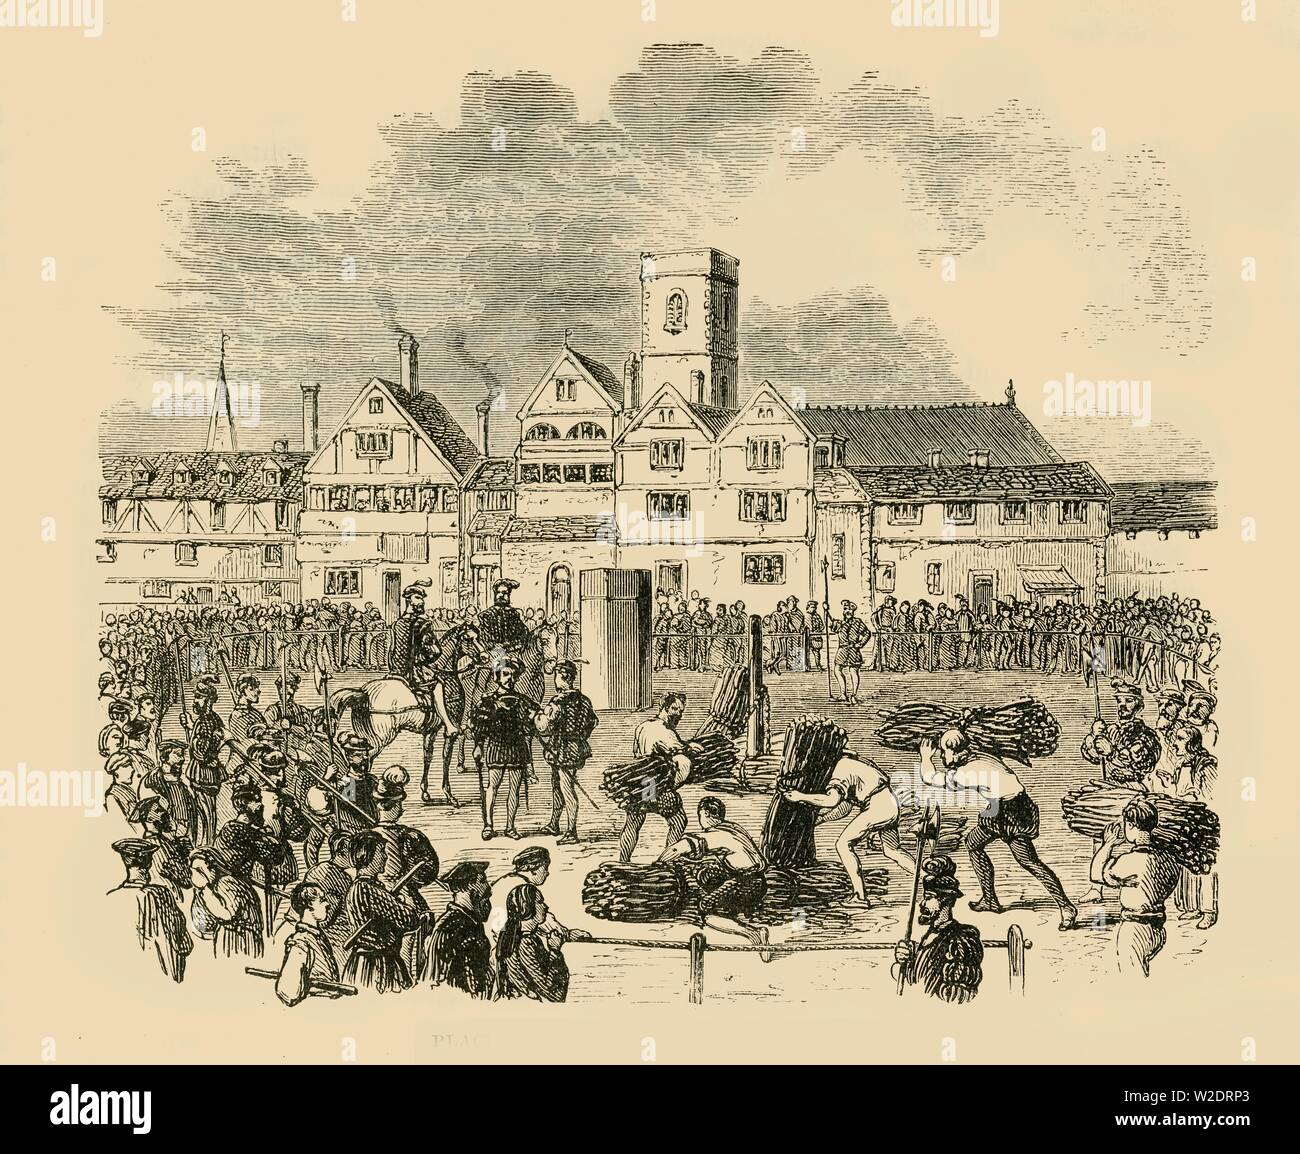 """'Place of Execution, Old Smithfield', 1890. The Marian Martyrs, protestants slaughtered under Queen Mary, met their demise at the Elms in Smithfield, also the site of William Wallace's execution in 1305.  Heretics were burned at the stake. From """"Cassell's Illustrated Universal History, Vol. IV - Modern History"""", by Edmund Ollier. [Cassell and Company, Limited, London, Paris and Melbourne, 1890] - Stock Image"""